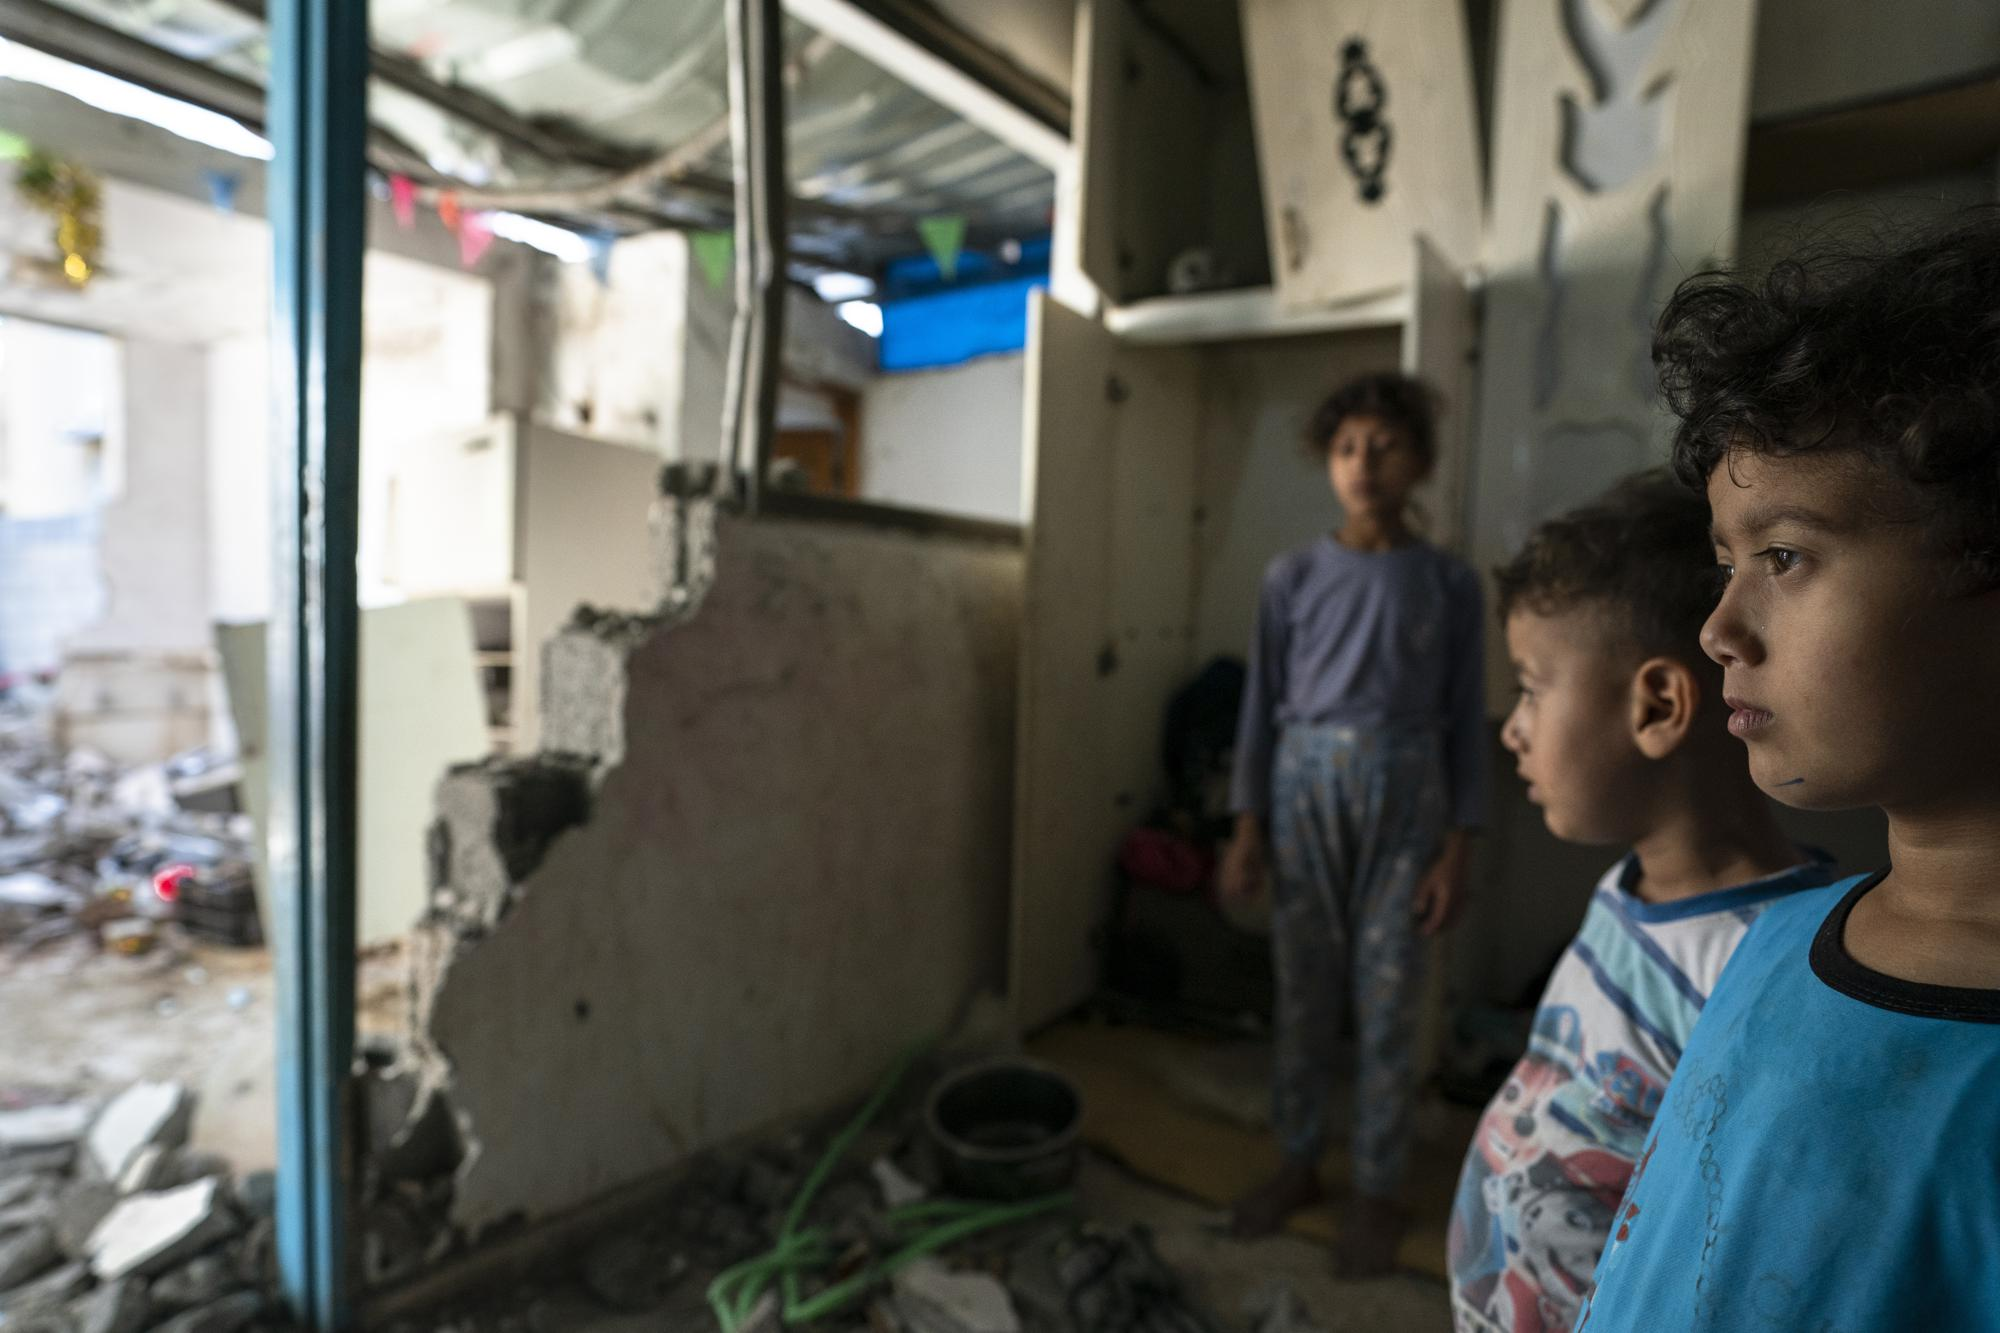 Batul Al-Masri, 5, and her siblings stand for a portrait in their bedroom that was damaged when an airstrike destroyed a nearby building prior to a cease-fire that halted an 11-day war between Gaza's Hamas rulers and Israel, Wednesday, May 26, 2021, in Beit Hanoun, Gaza Strip. (AP Photo/John Minchillo)